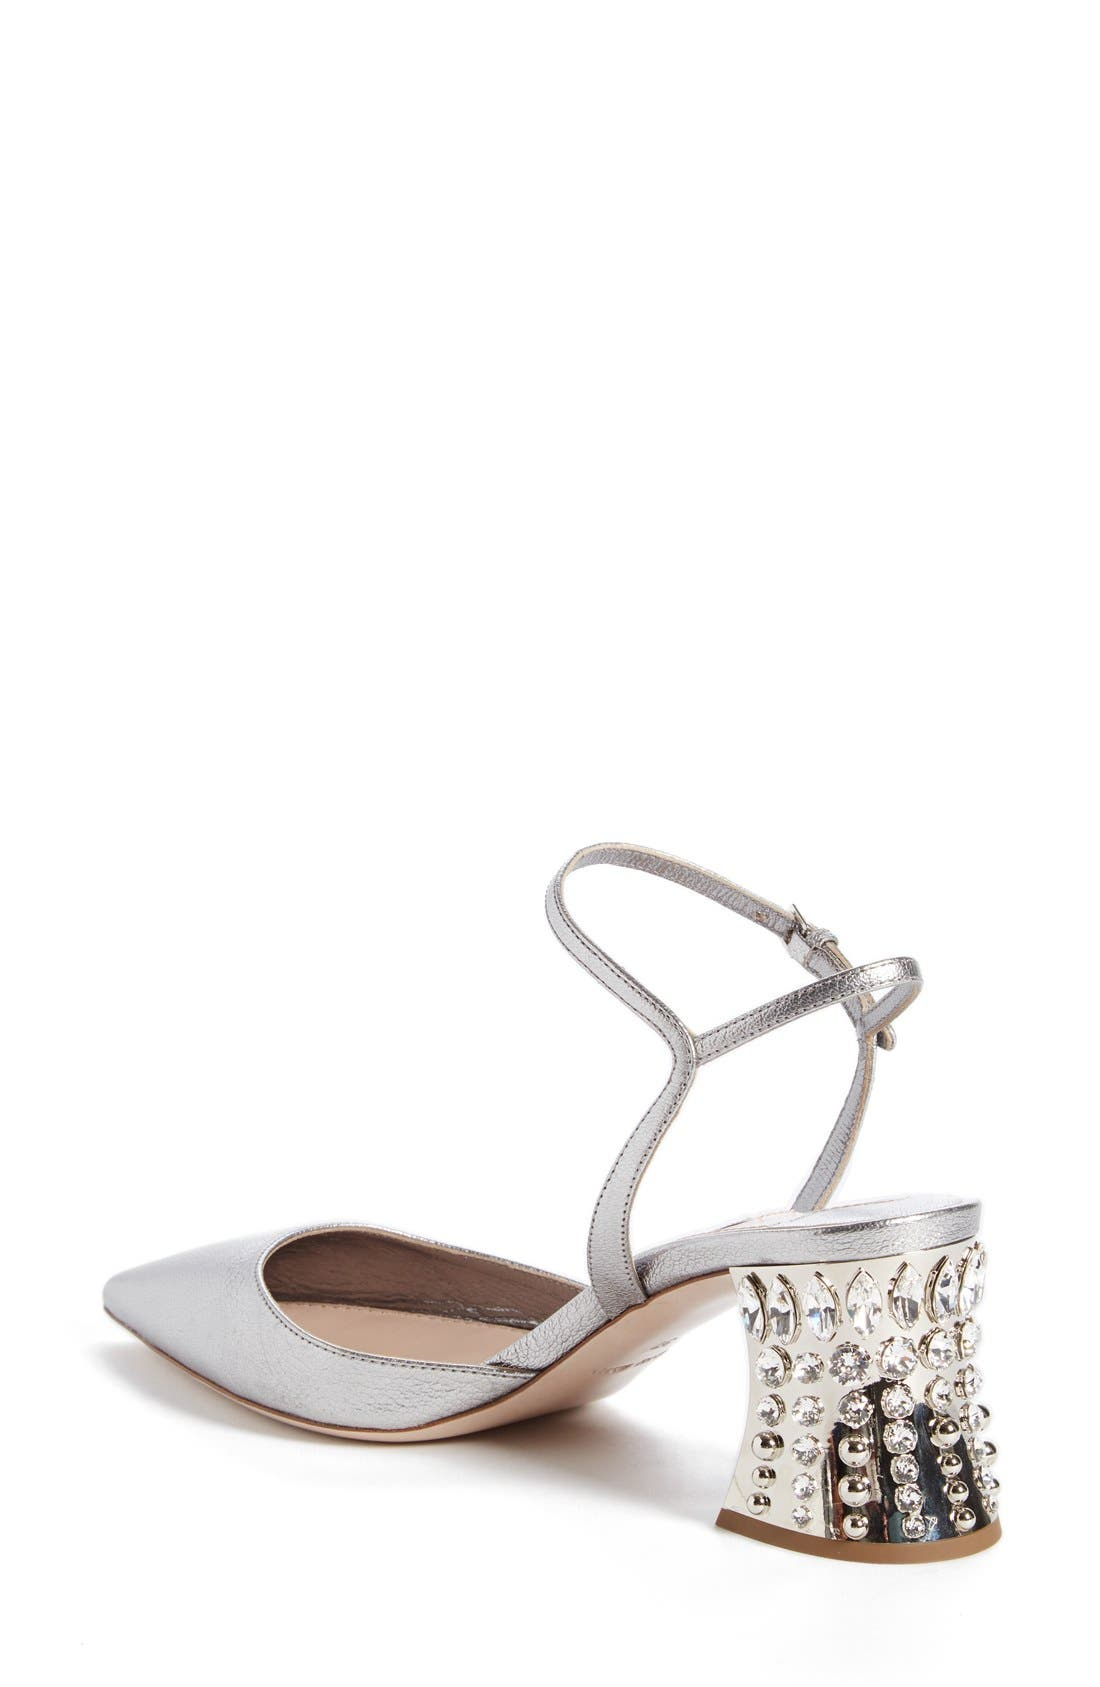 Jeweled Heel Ankle Strap Pump,                             Alternate thumbnail 2, color,                             Metallic Silver Leather